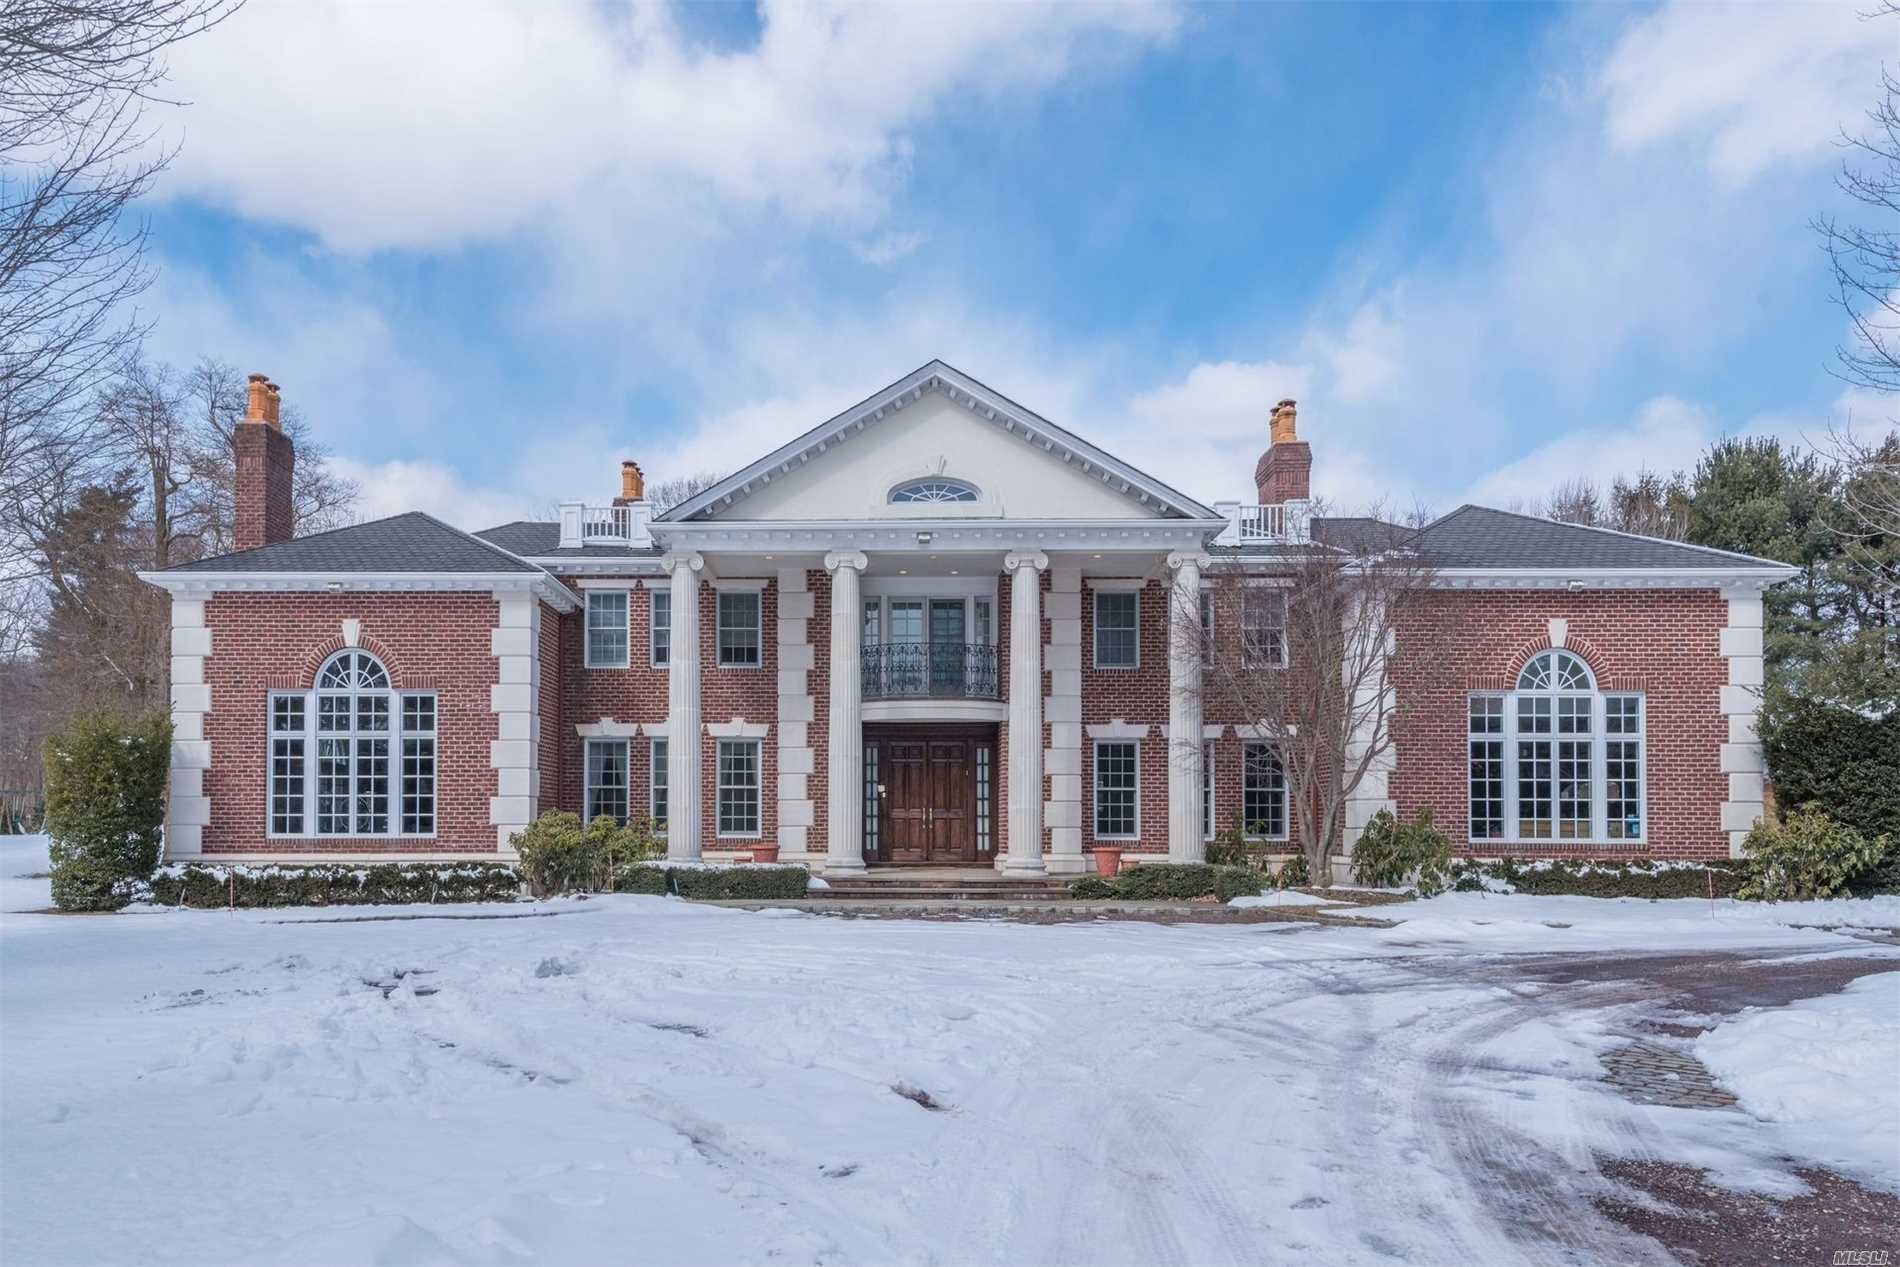 Old Westbury. Mint 9000 Square Foot Center Hall Georgian Colonial overlooking the Polo Fields of Old Westbury. Dramatic 2 Story Entry Foyer. Great Home For Entertaining With 12' High Ceilings, Bright Sunlit Large Rooms & Beautiful Millwork Throughout. Oversized Master Suite With Sitting Room & Large His & Her Walk In Closets. Lower Level Offers 15 Seat Theater, Gym, Large Playroom And Plenty Of Storage. Gunite Pool w Jacuzzi as well as your own 150 Yard Golf Hole. Gas Generator. A Must See!